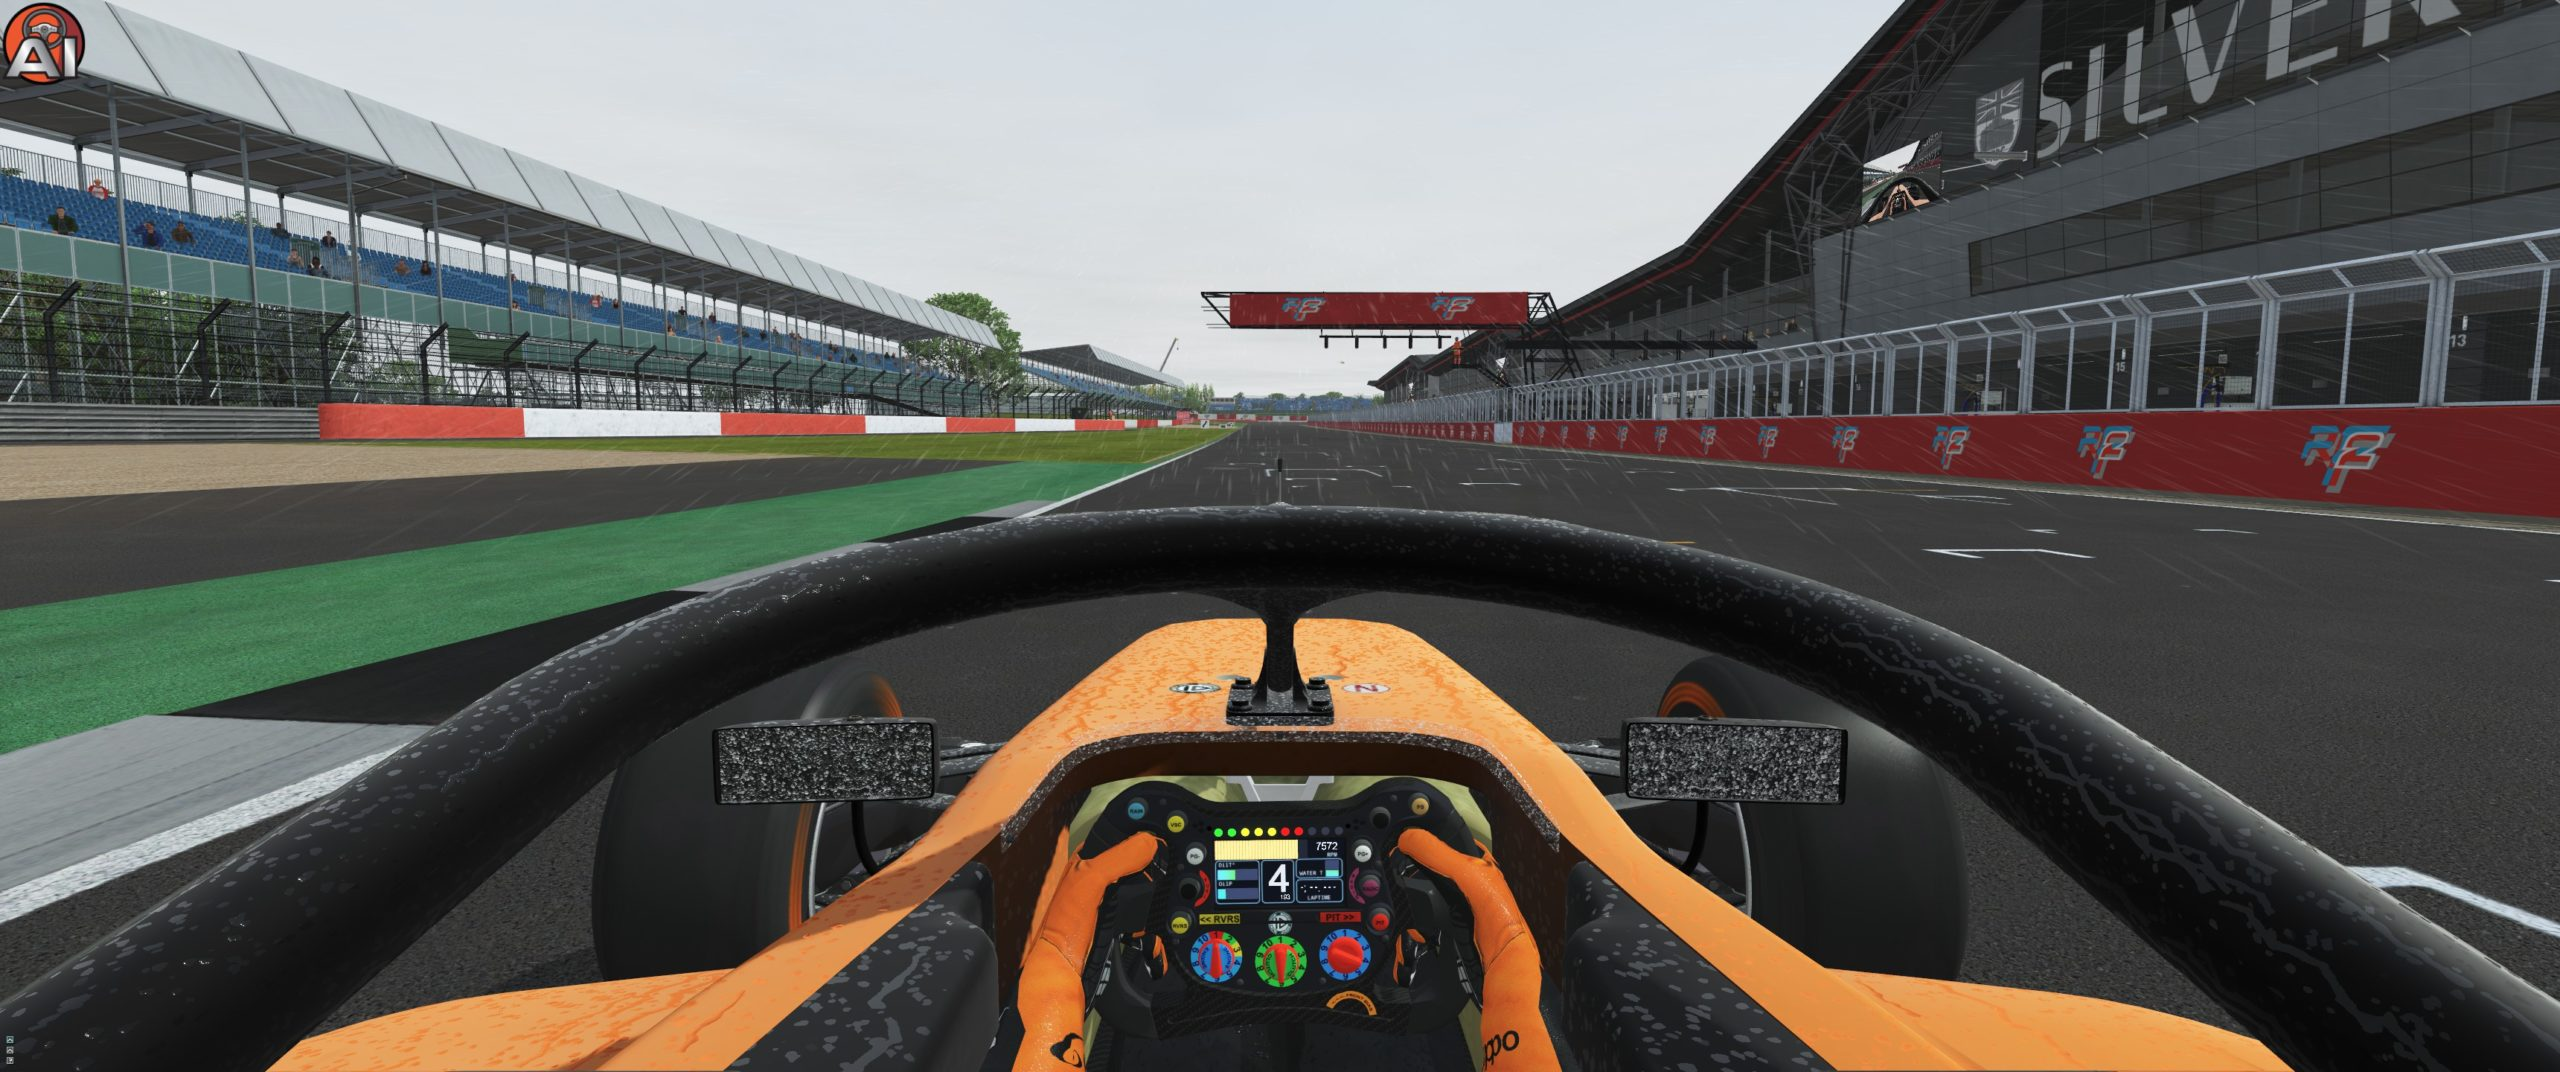 20200602135624_1-scaled SMMG Formula 3 2020 1.0 for rFactor 2 – Released